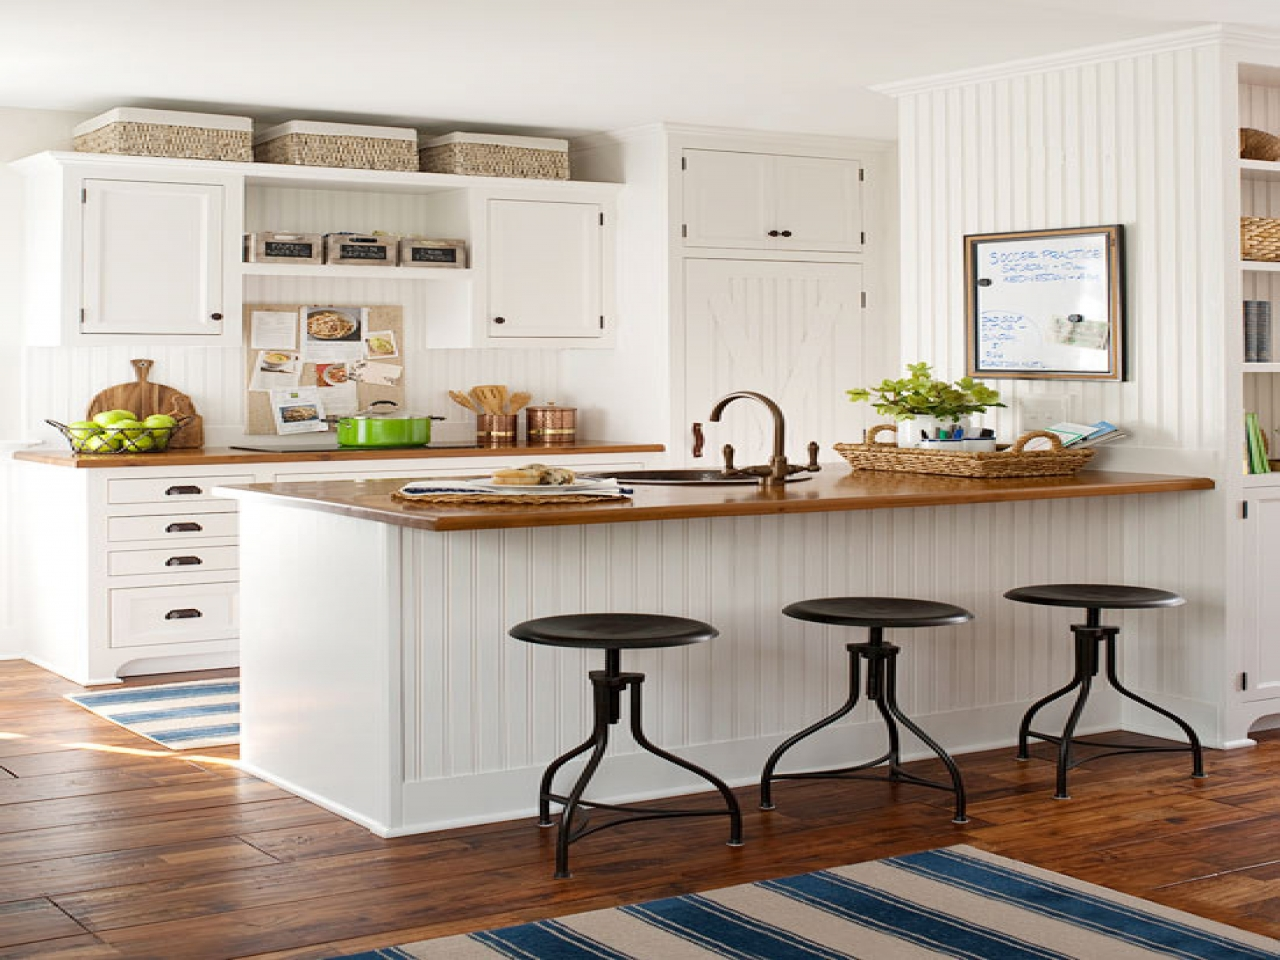 How Do I Decorate Above Kitchen Cabinets I Have At Least 4 To The